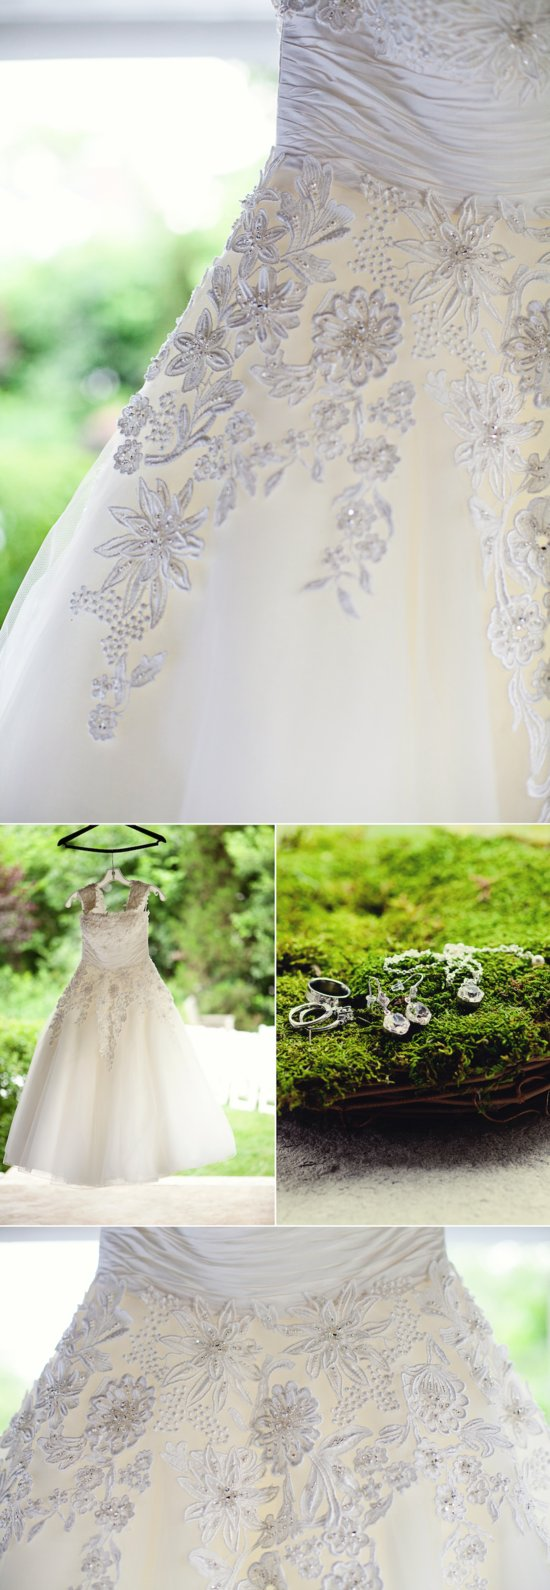 Kansas City Wedding - Beautifully Embellished Wedding Dress